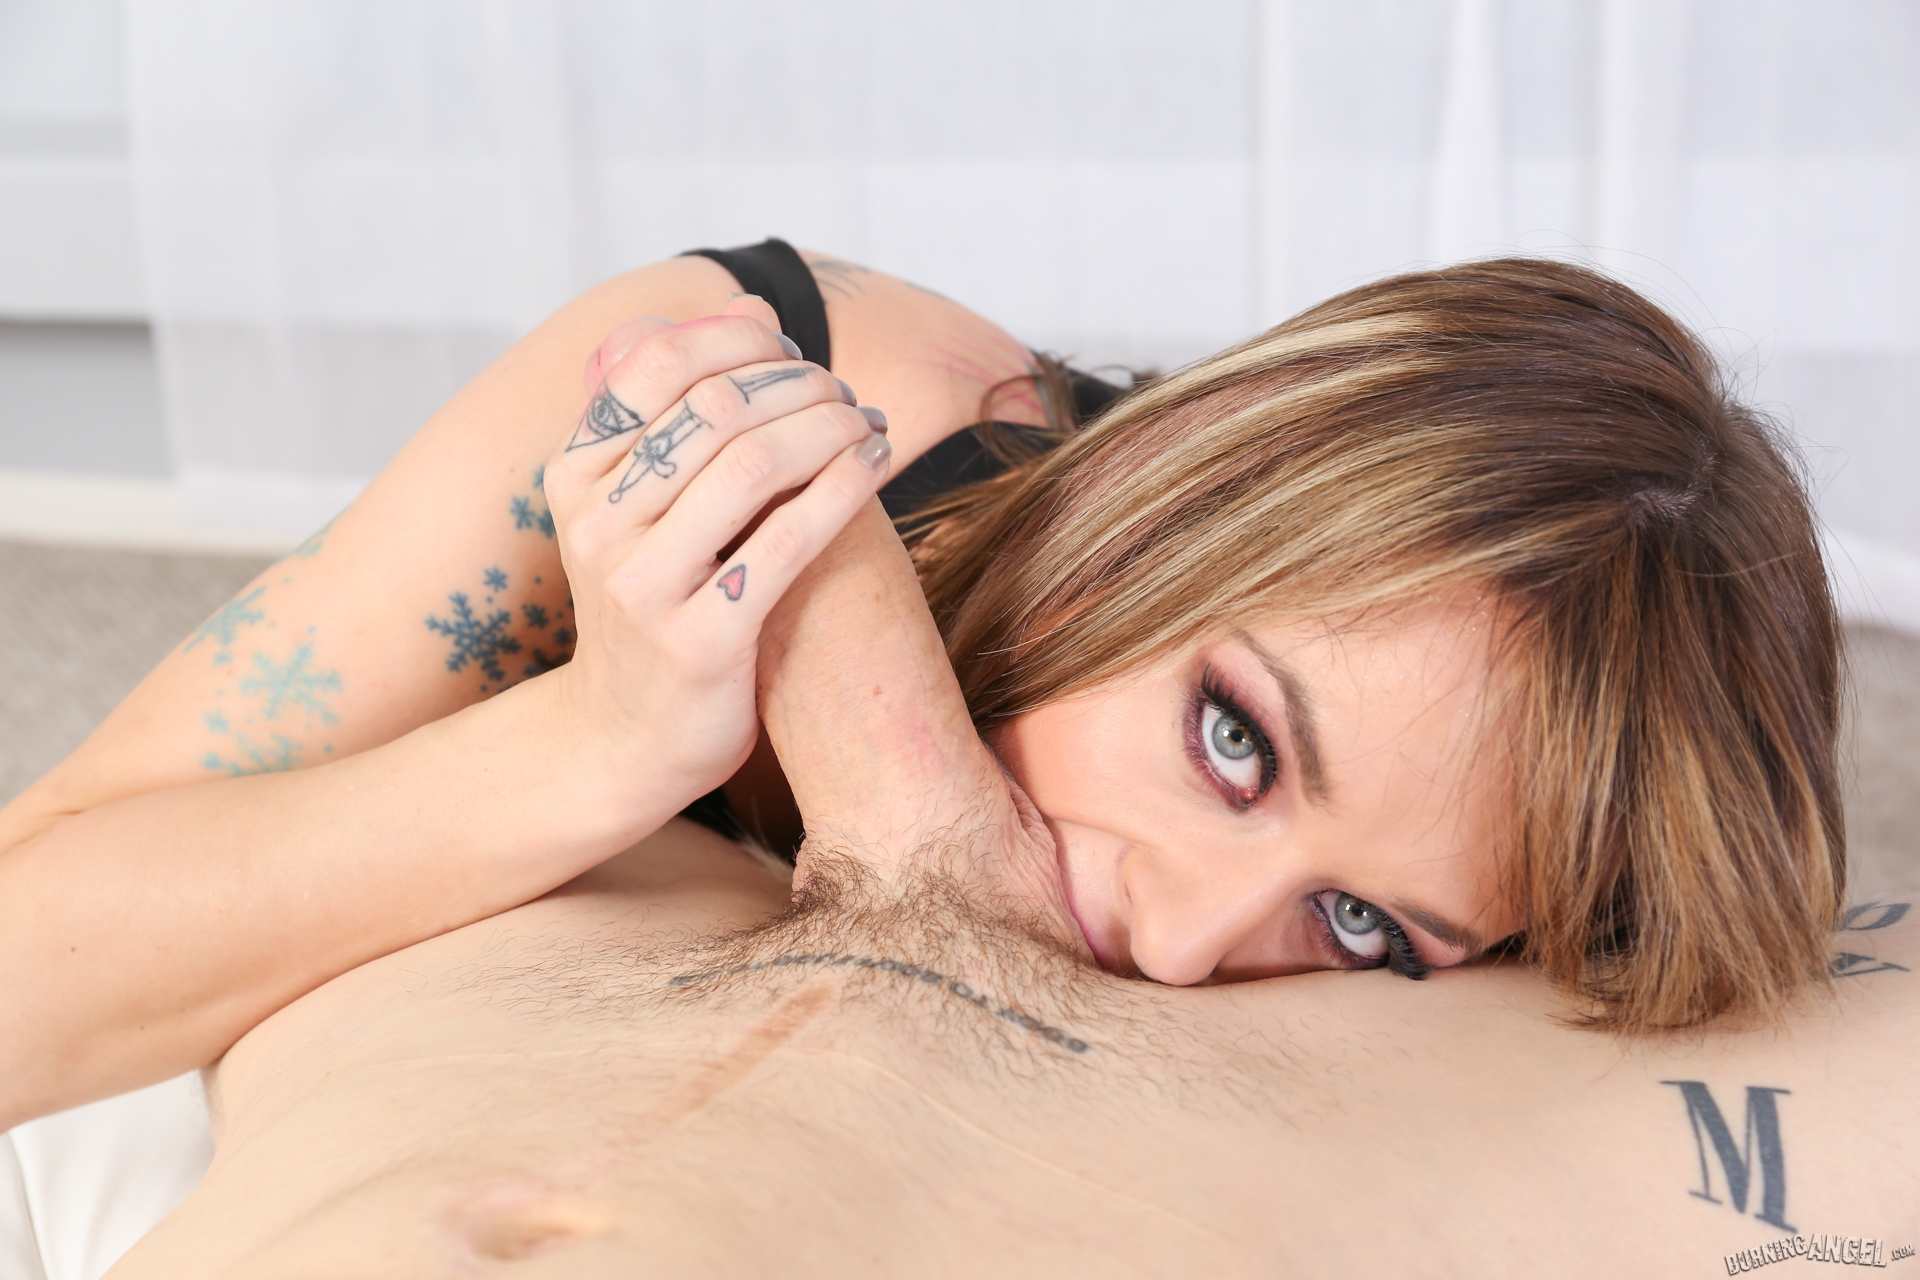 Sammie Six pussy and ass is burning after she had some hot sex #7